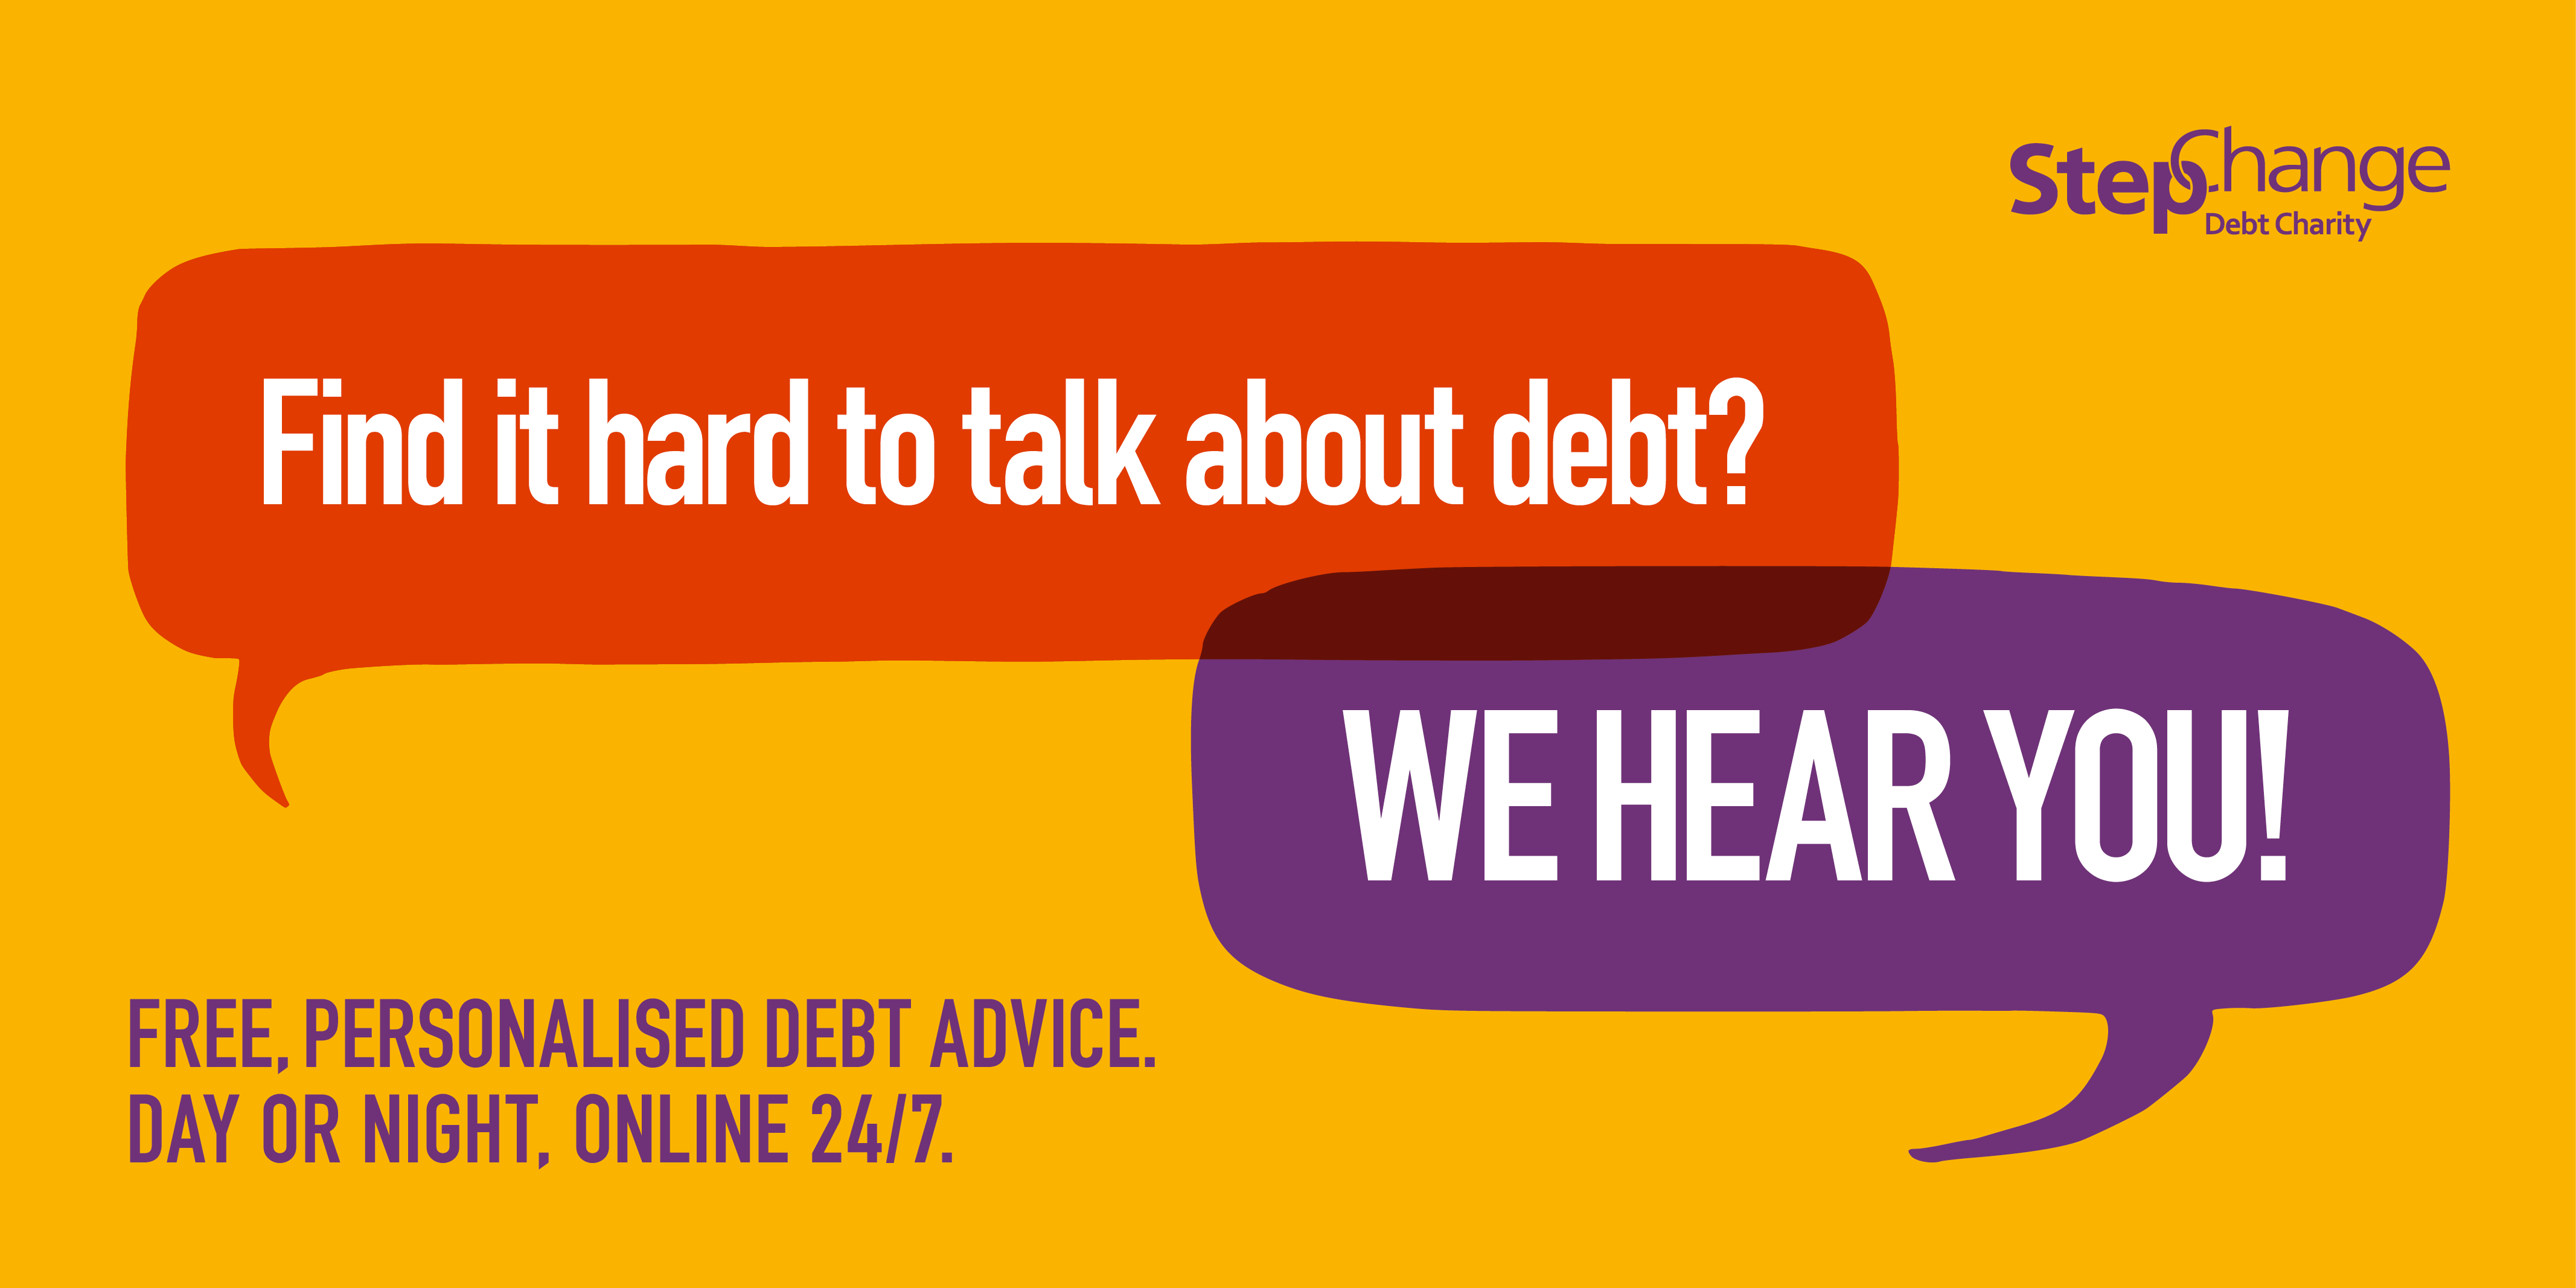 Find it hard to talk about debt? We Hear You